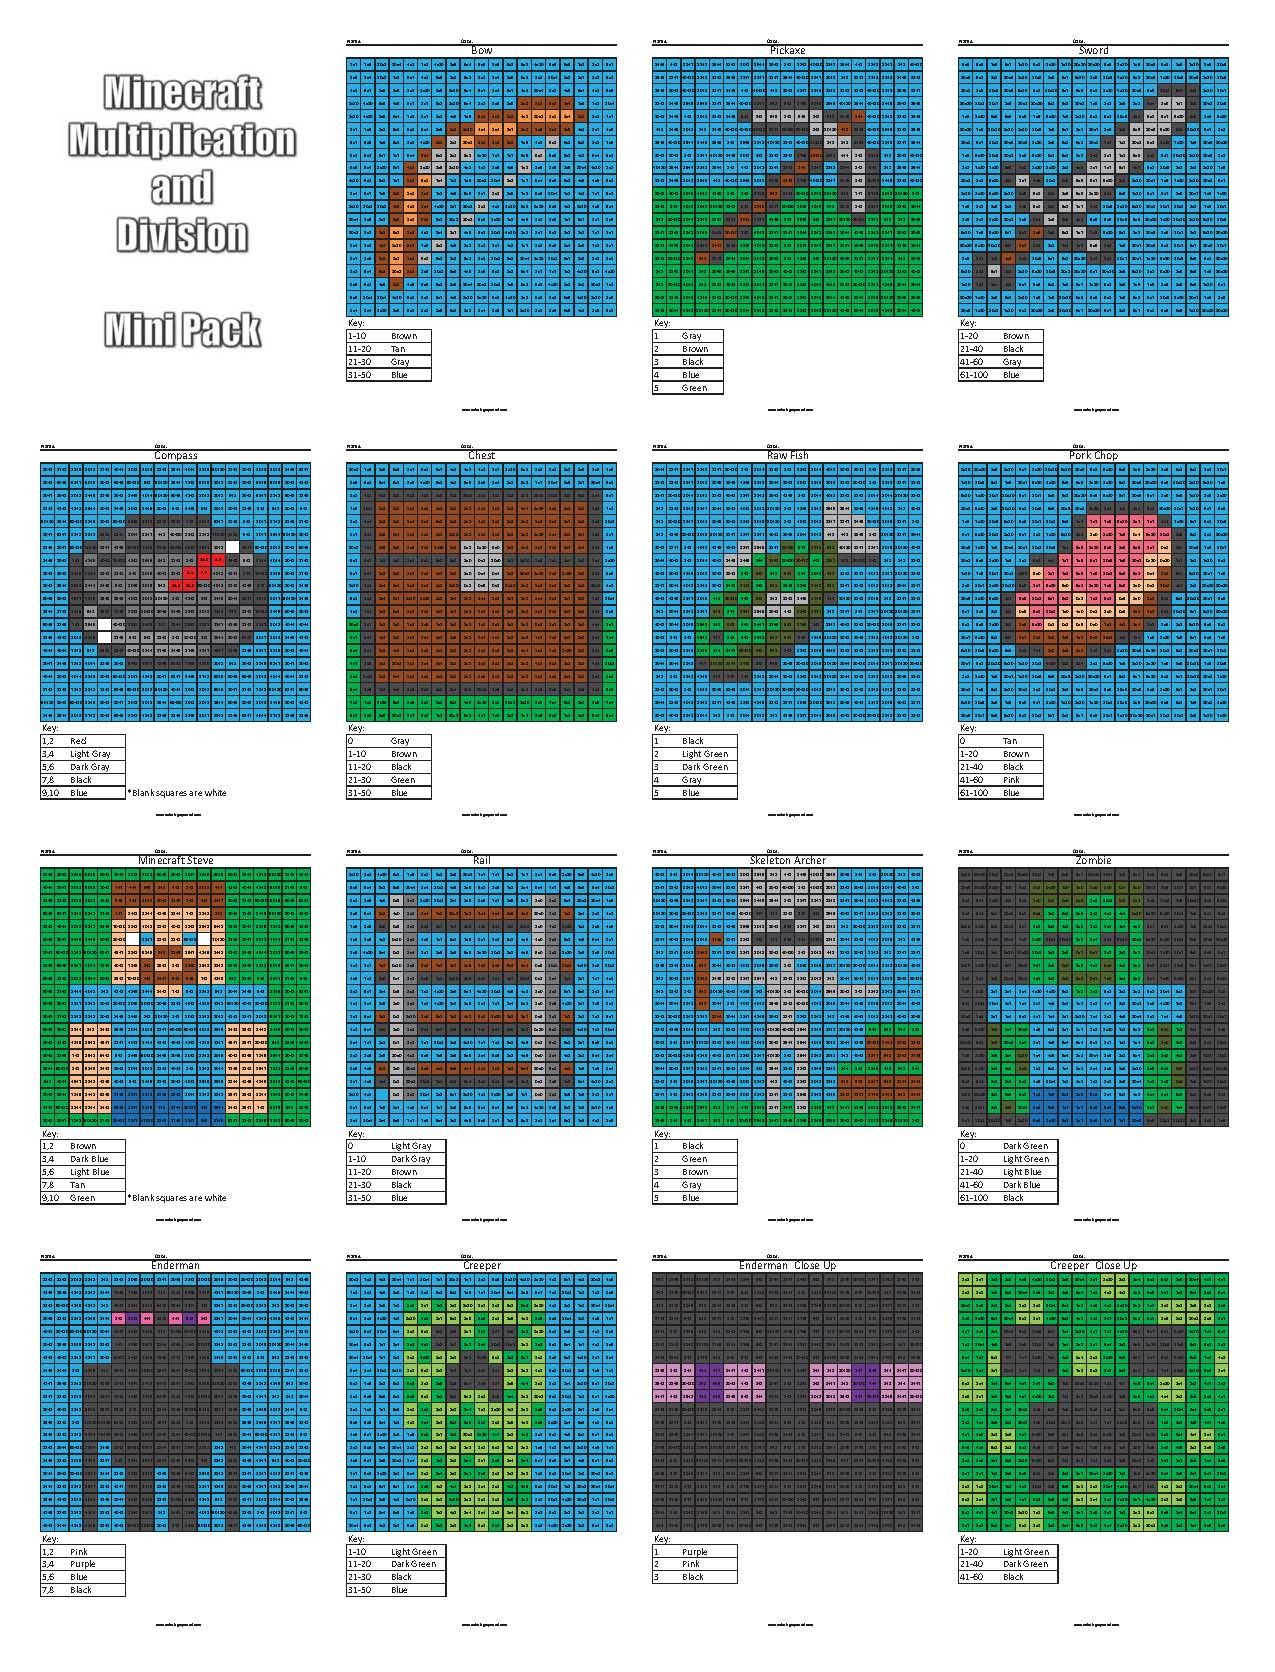 Coloring pages using addition - Minecraft Multiplication And Division Coloring Pages Practice Math Facts While You Color With These Fun